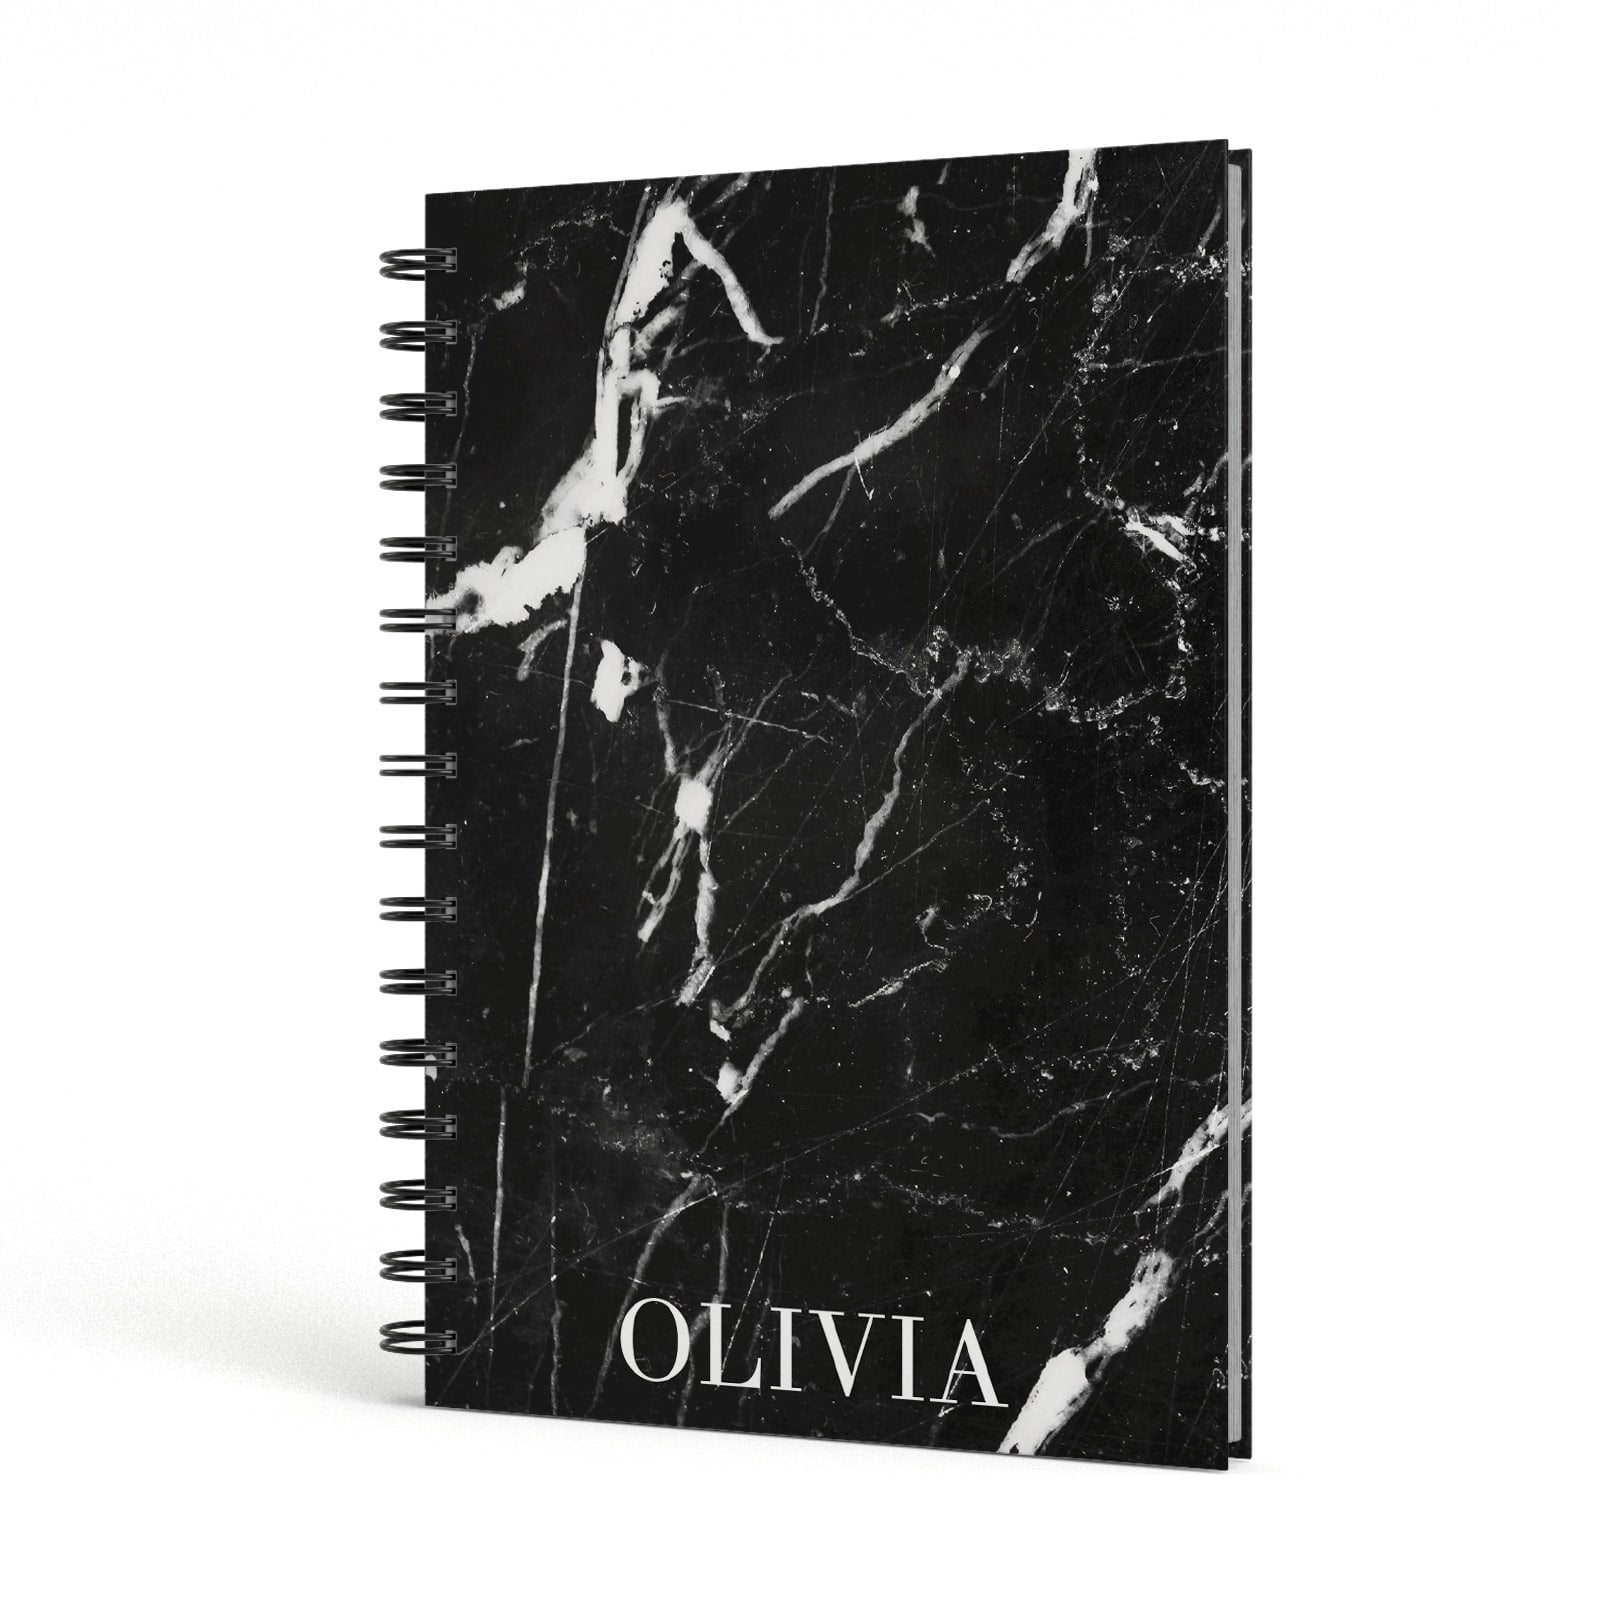 Marble Name Personalised A5 Hardcover Notebook Side View